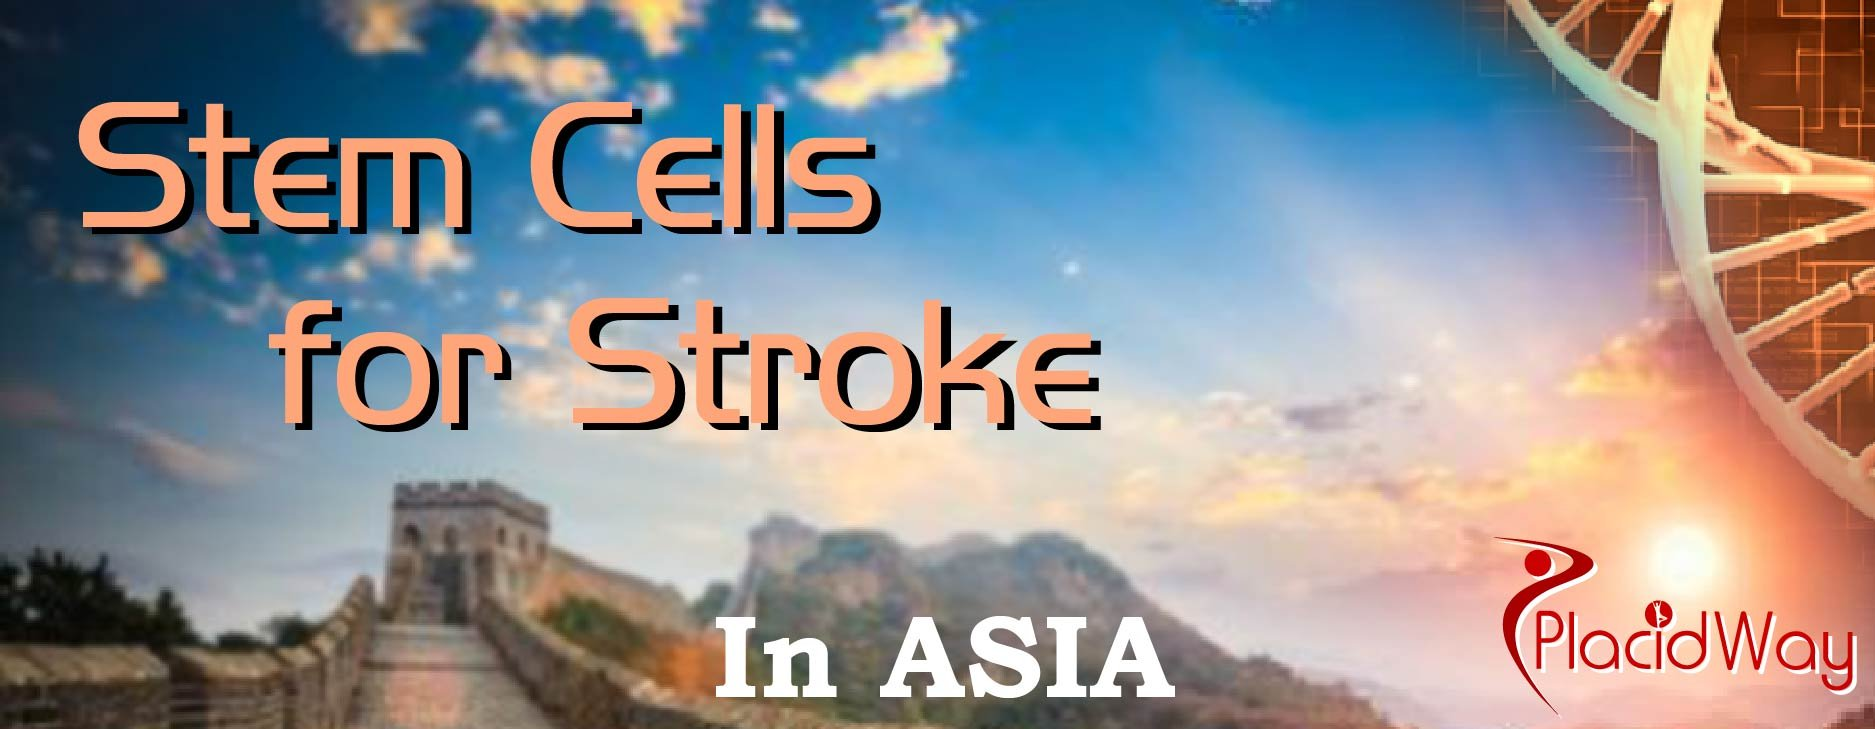 Stroke in Asia, Stem Cell for Stroke Middle East, Austral-Asia